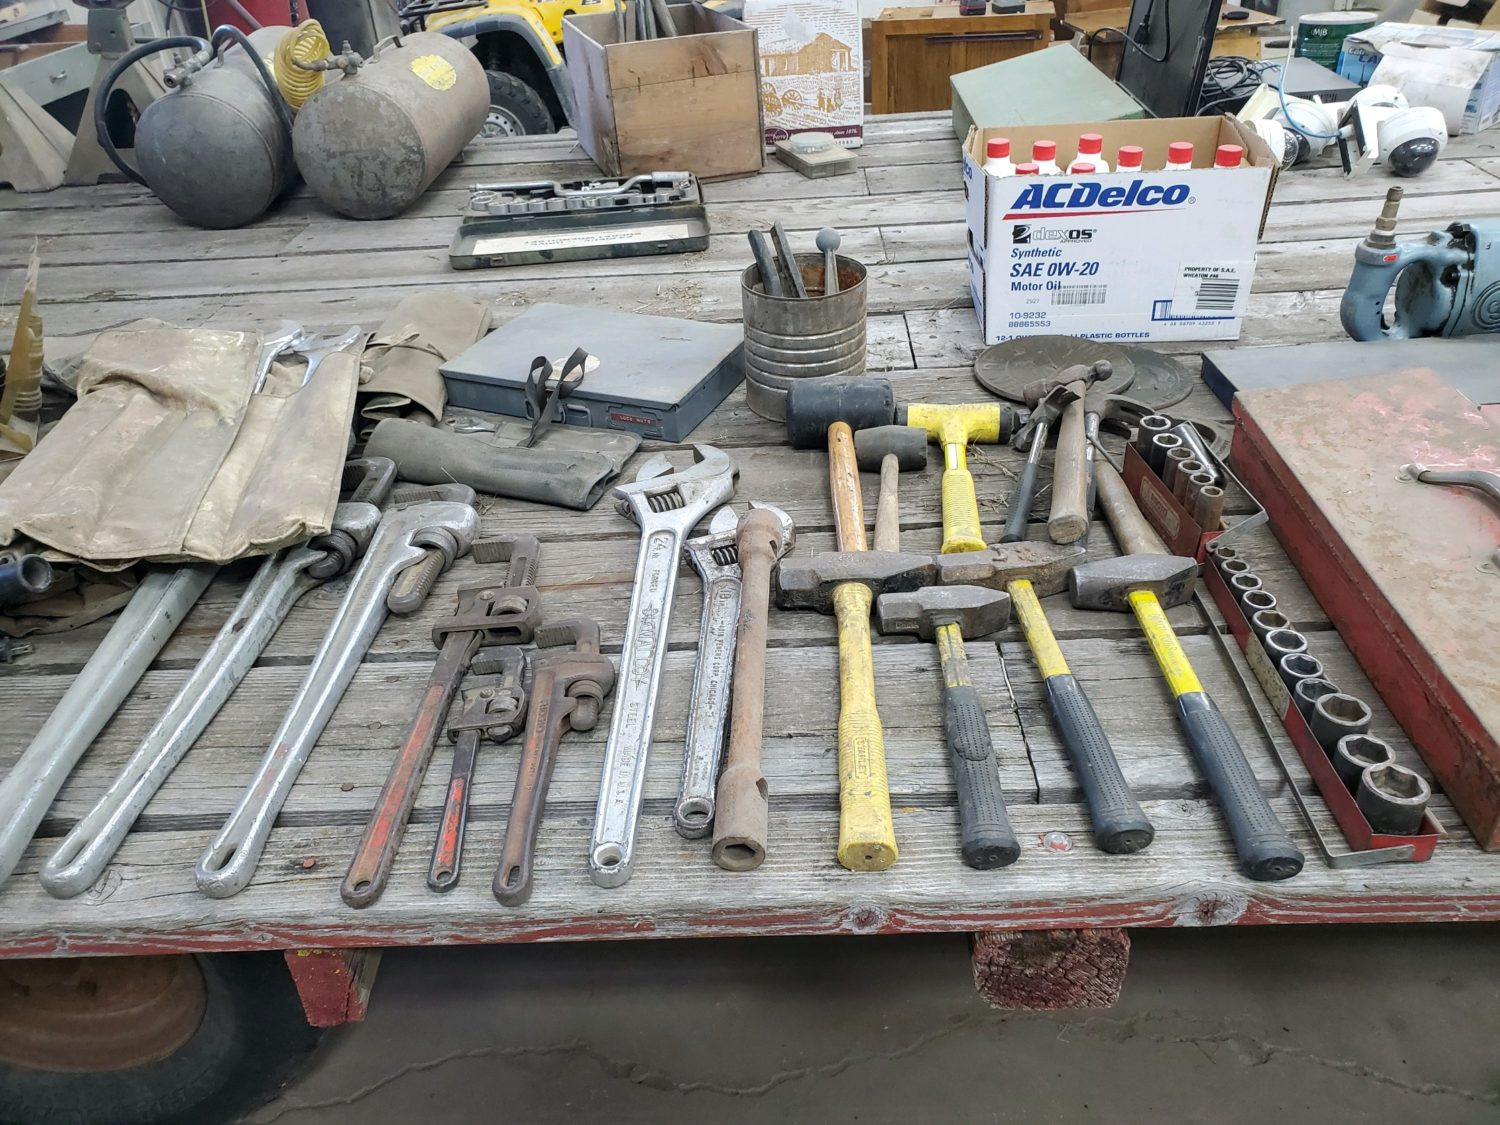 Shop Equipment, Tools, 4-Wheeler, Household & handful of Collector Cars- James Graham Estate - image 12